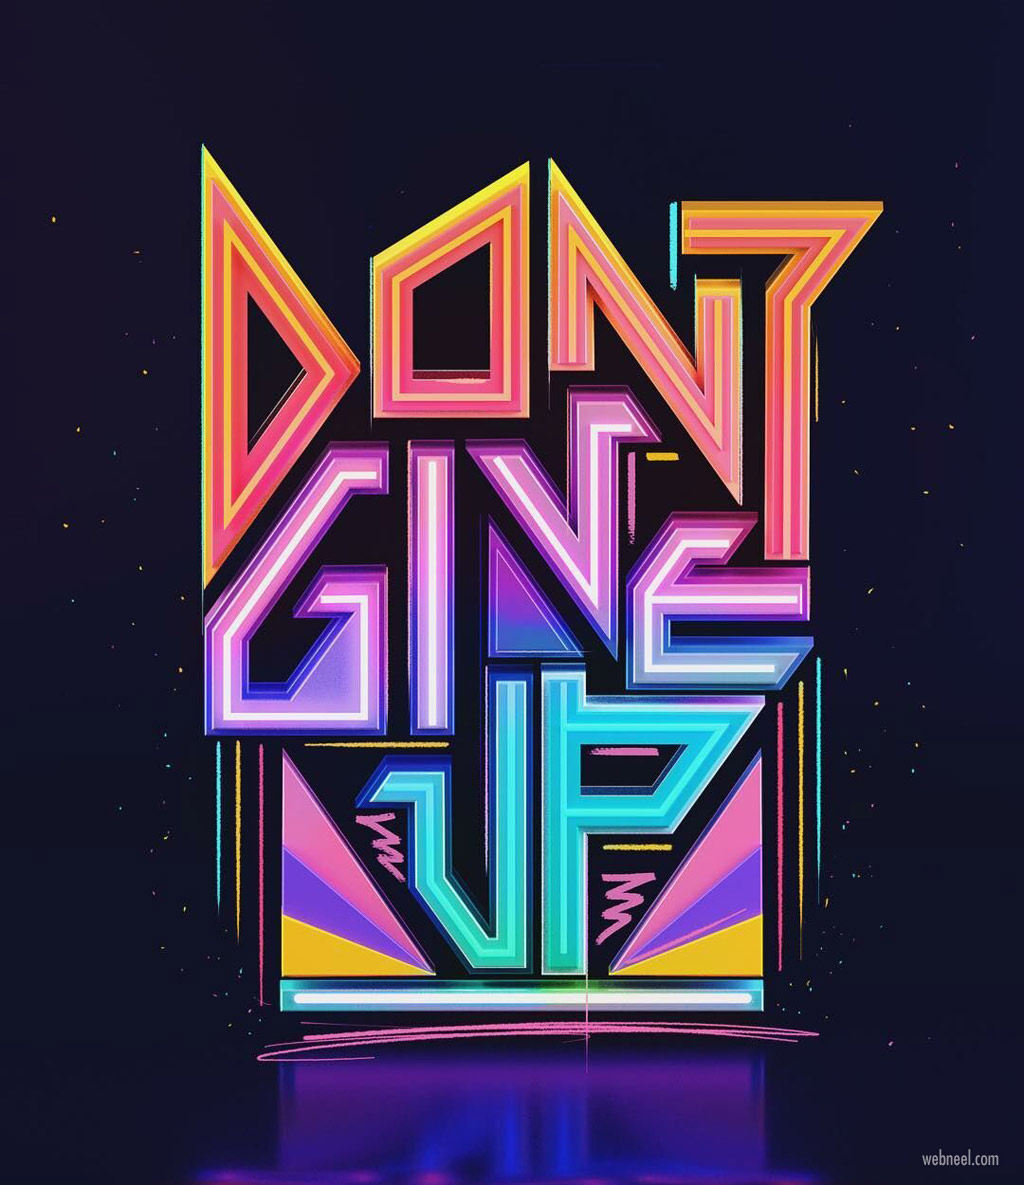 typography design motivational neon by prateekvatash